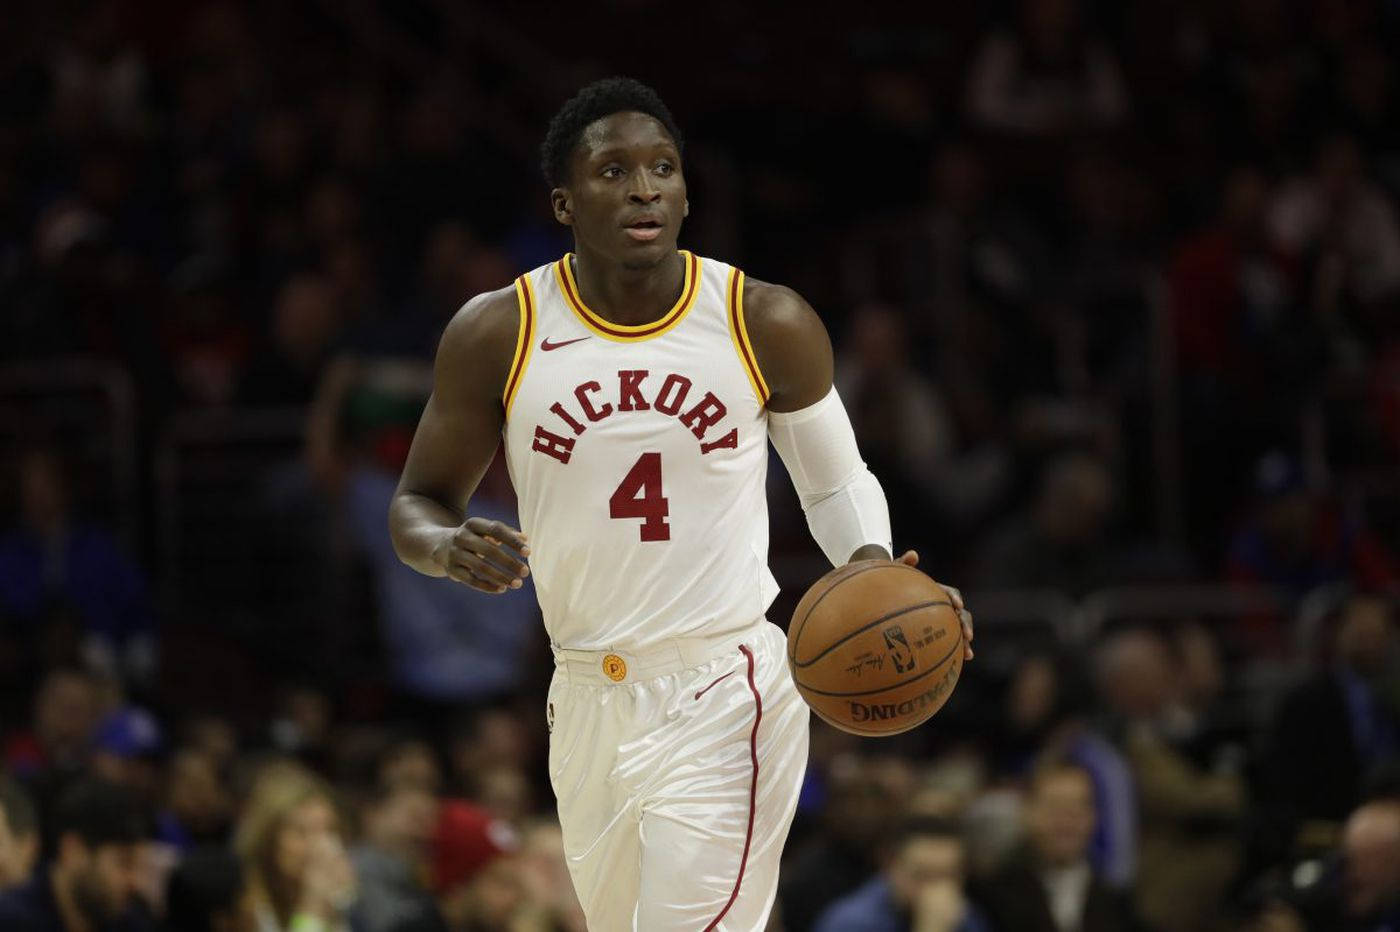 Pacers' Victor Oladipo on Markelle Fultz: 'His time is coming'